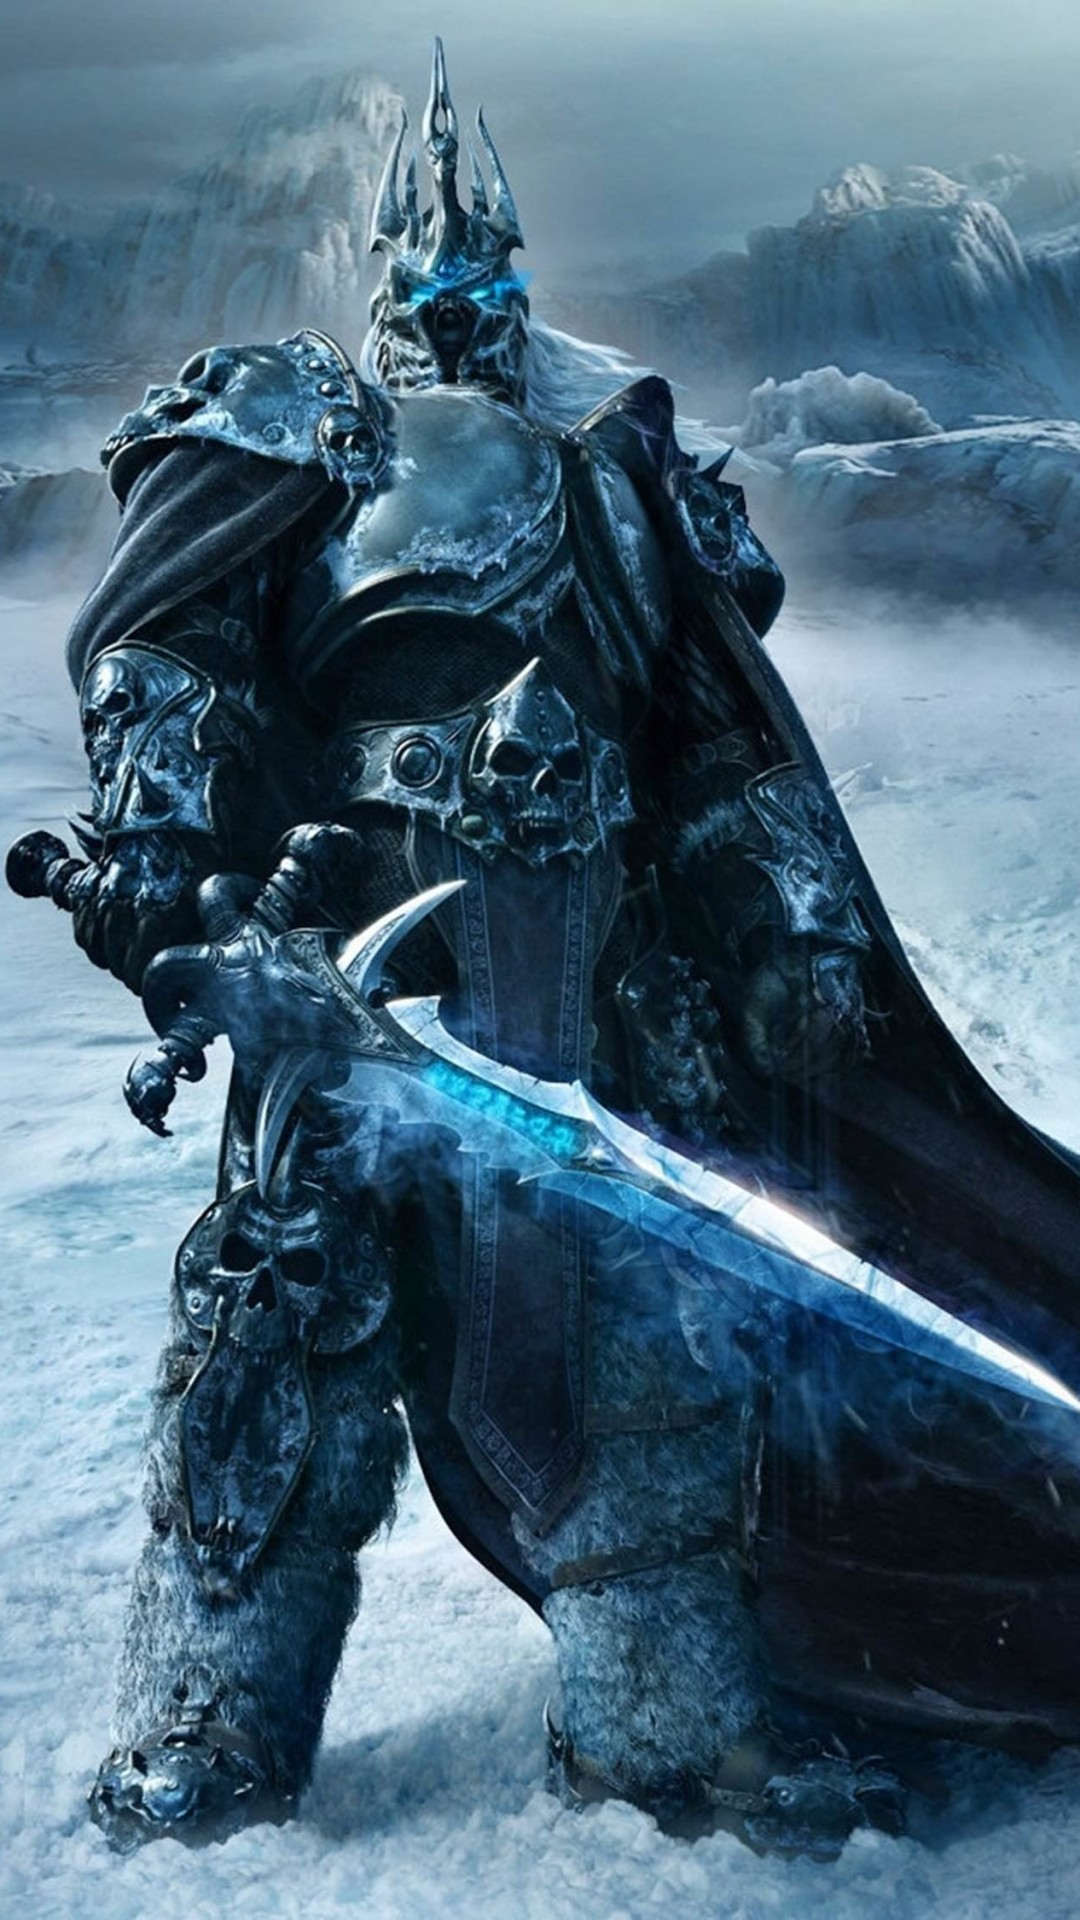 World of Warcraft: Wrath of the Lich King Wallpaper for SONY Xperia Z3